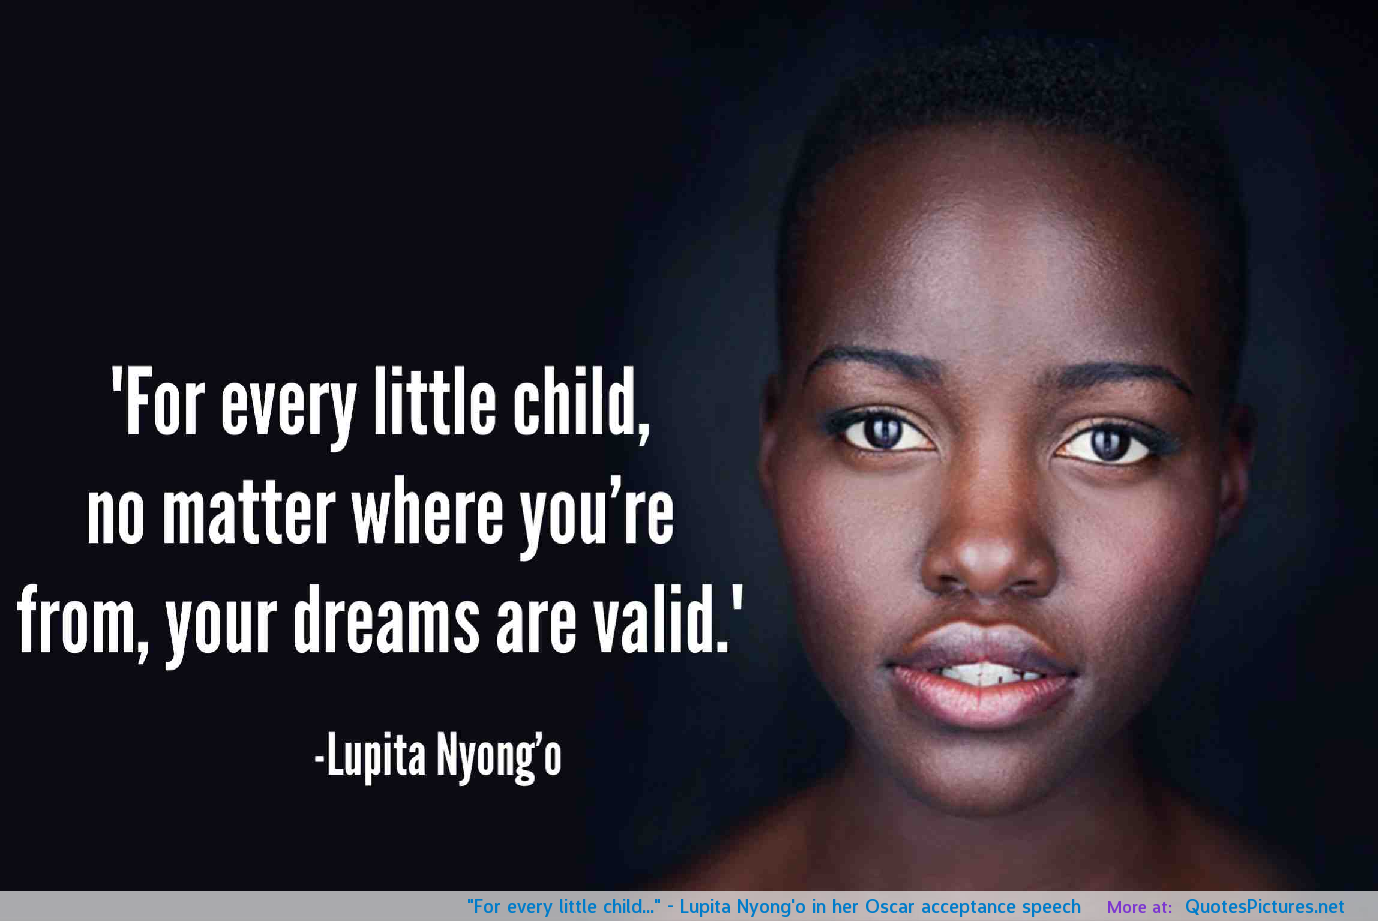 for-every-little-child-lupita-nyongo-in-her-oscar-acceptance